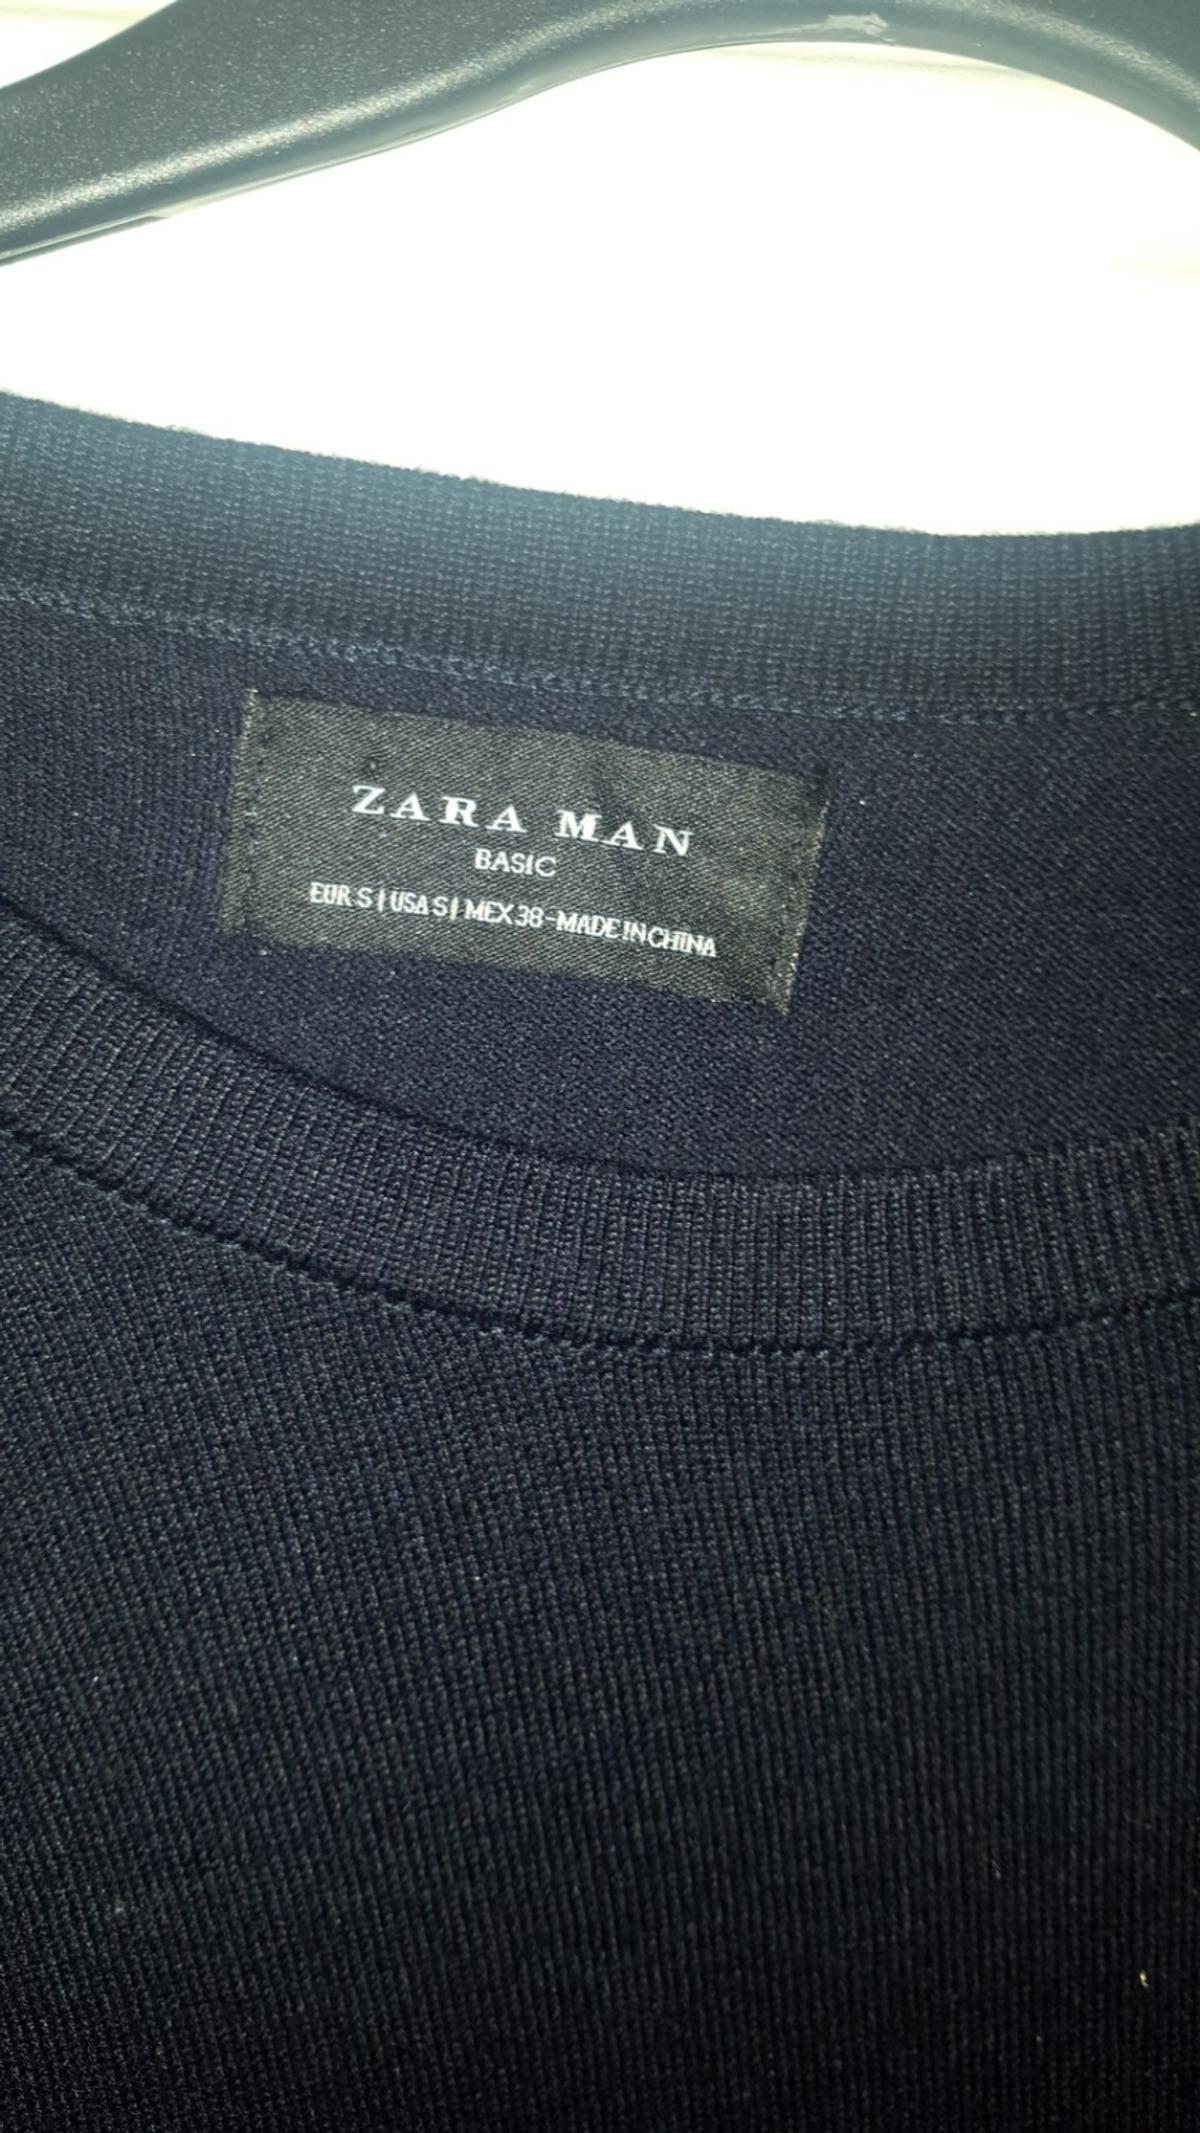 Size small worn once excellent condition